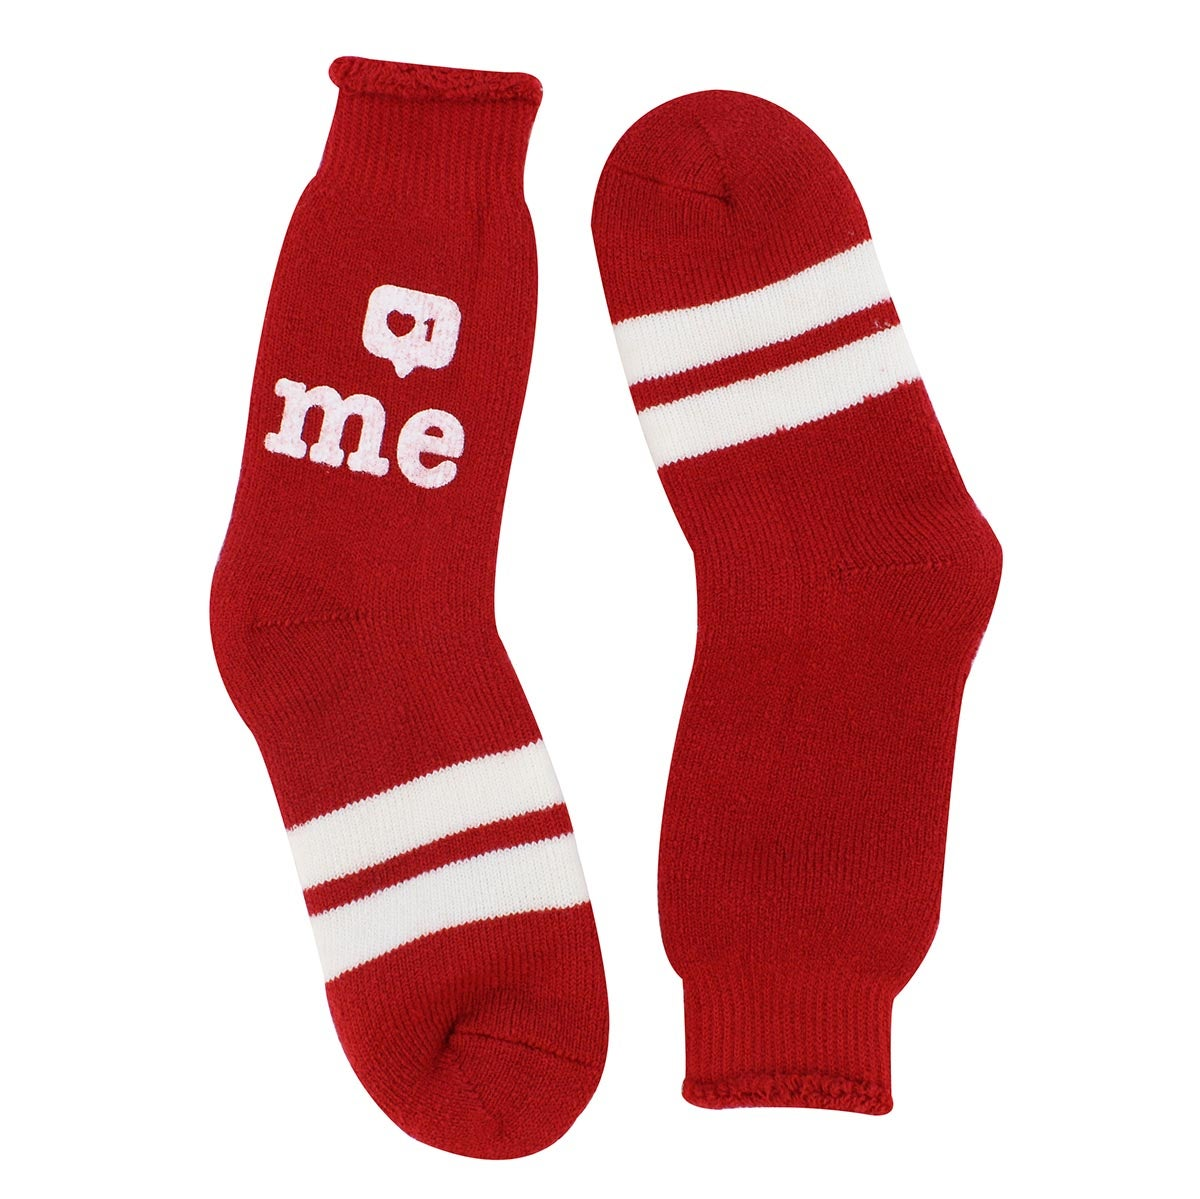 Lds Like Me red crew sock